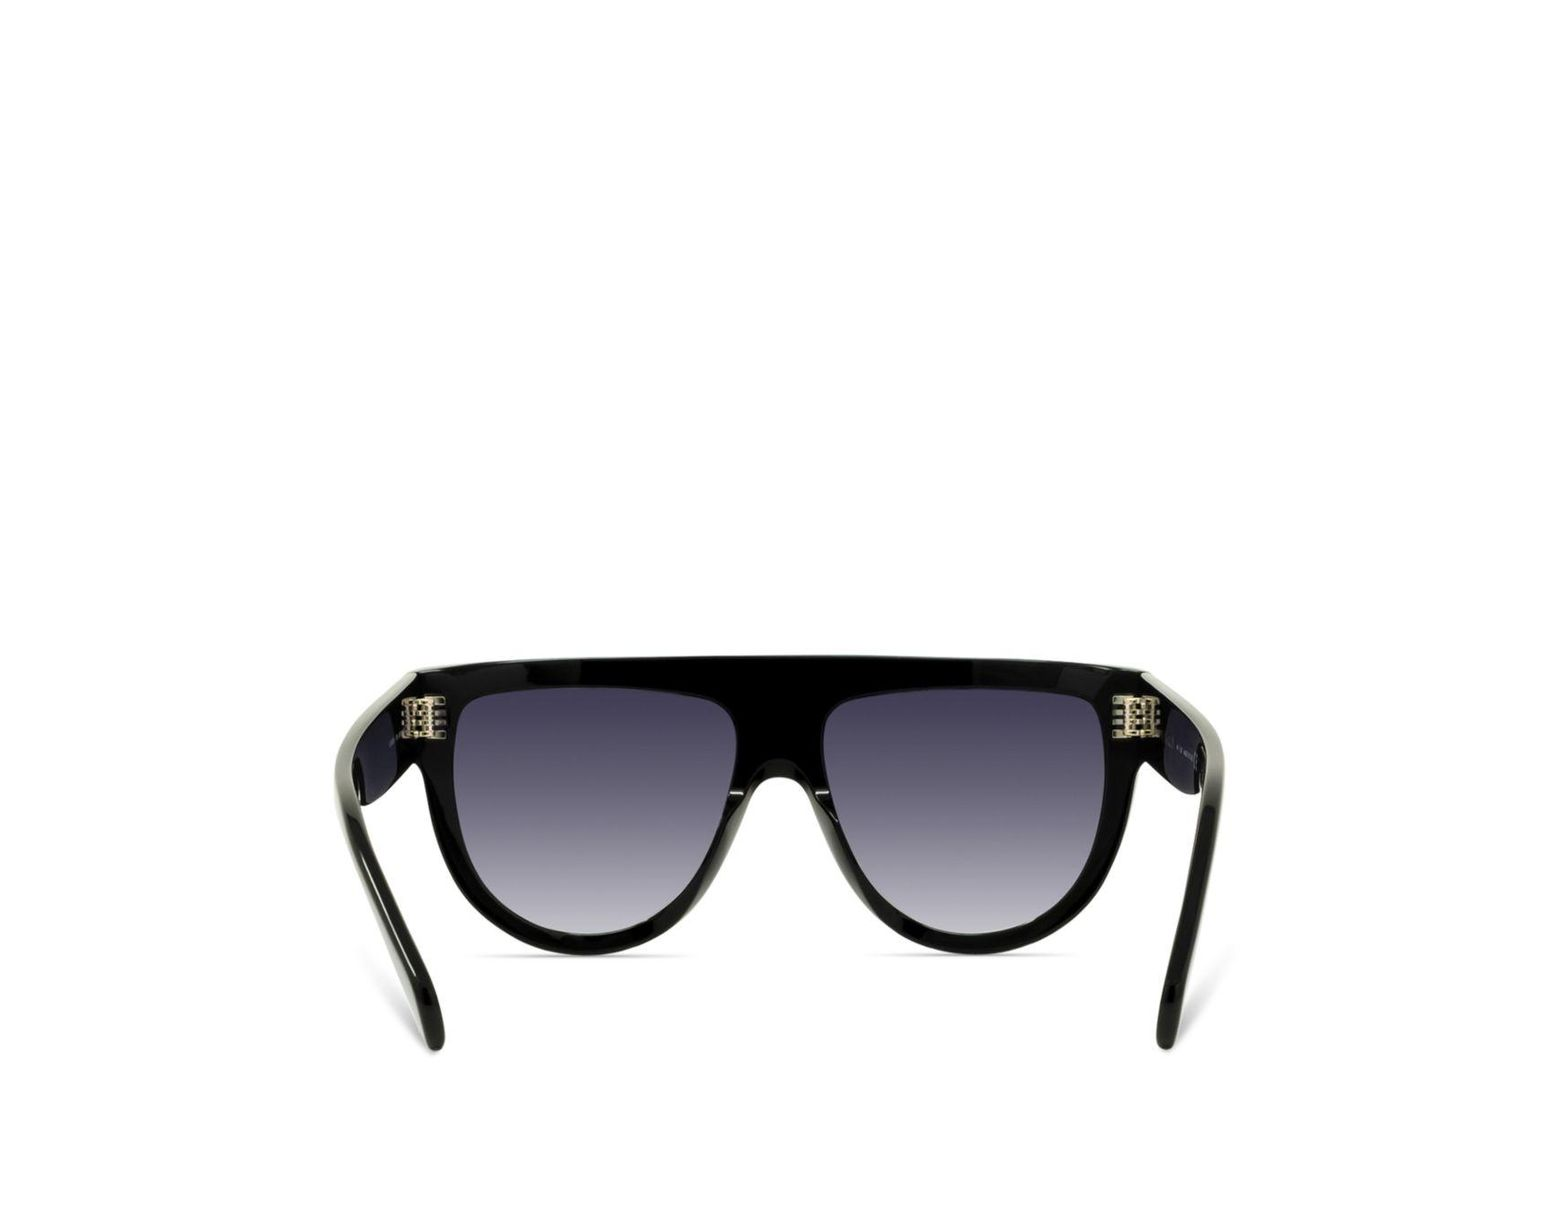 3f94ebd7a7a9 Céline Women's Embellished Flat Top Aviator Sunglasses in Black - Lyst